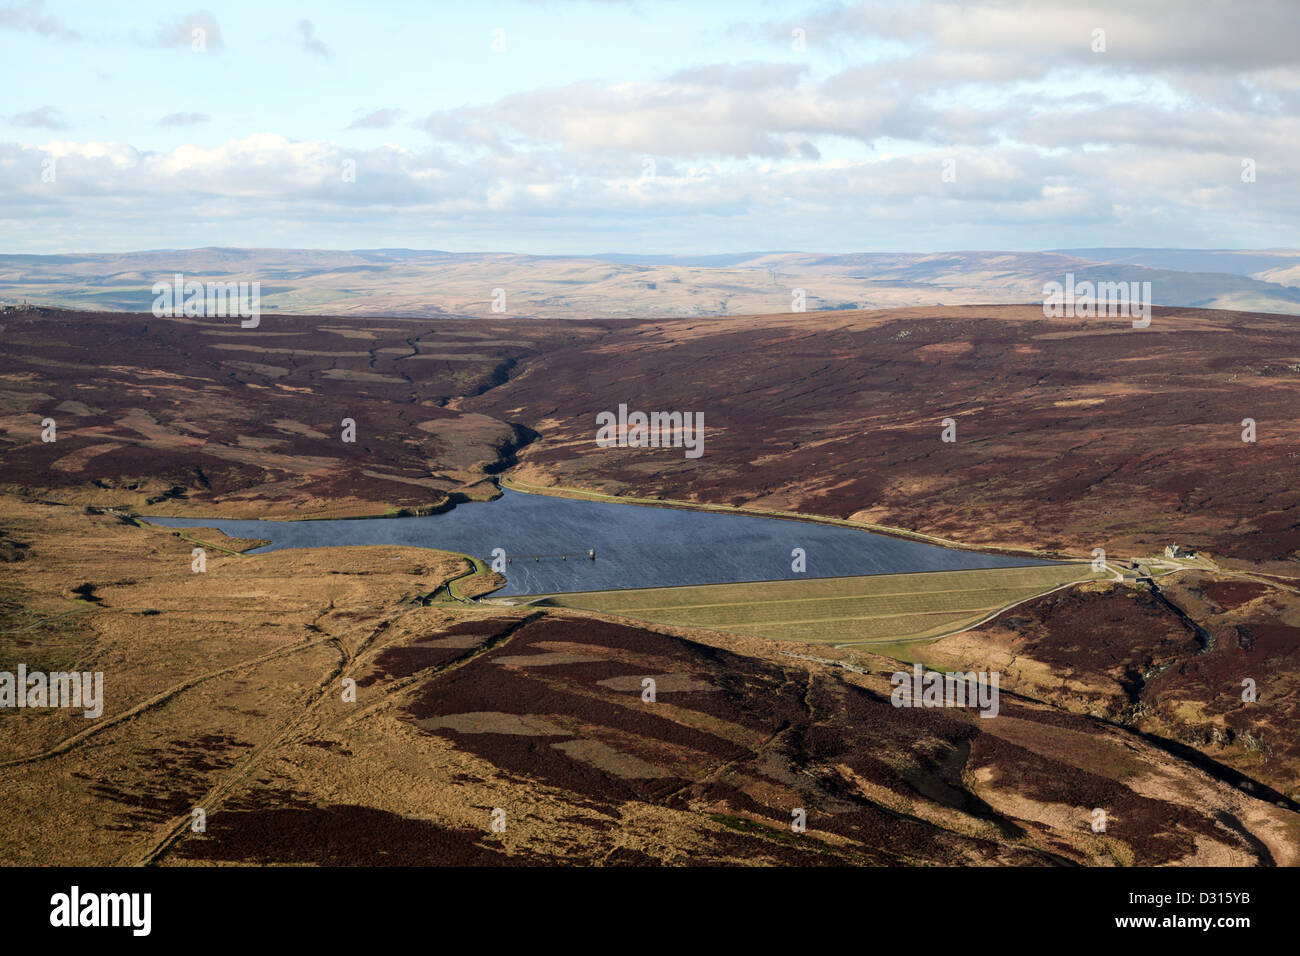 aerial view of a reservoir on the Pennines, UK - Stock Image